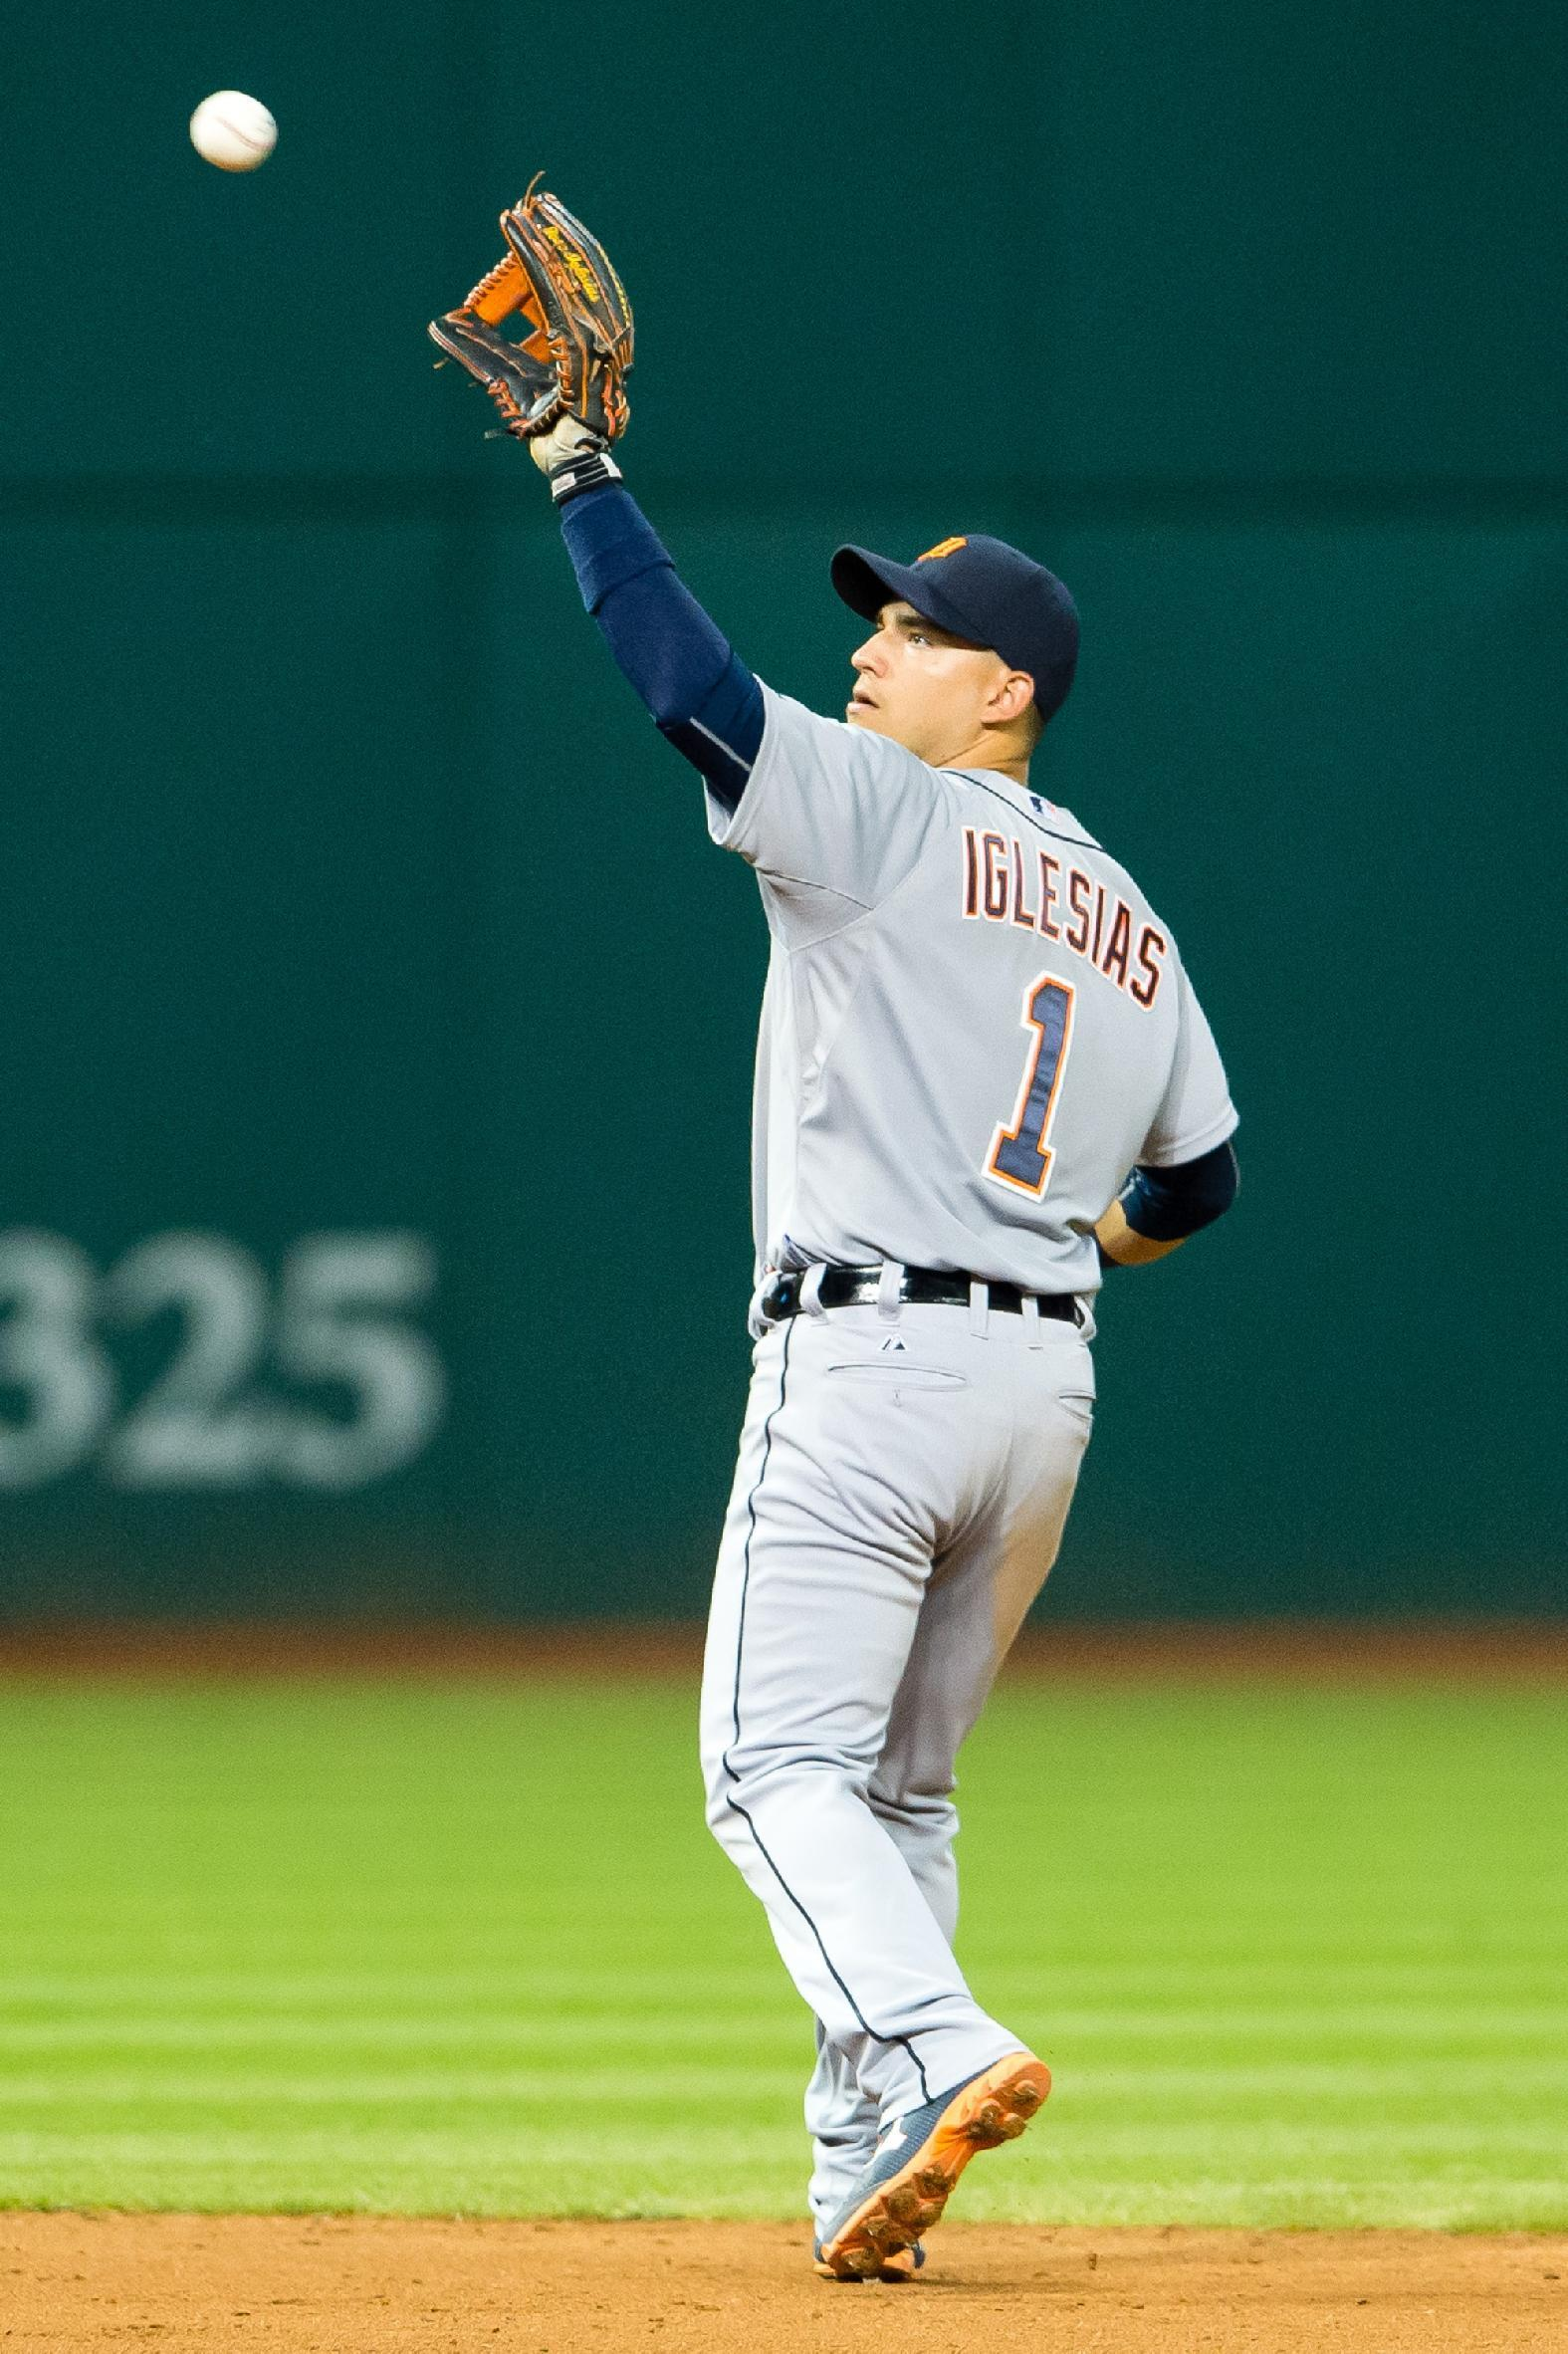 Jose Iglesias, not Alcides Escobar, was the players' vote for AL shortstop. (Getty Images)